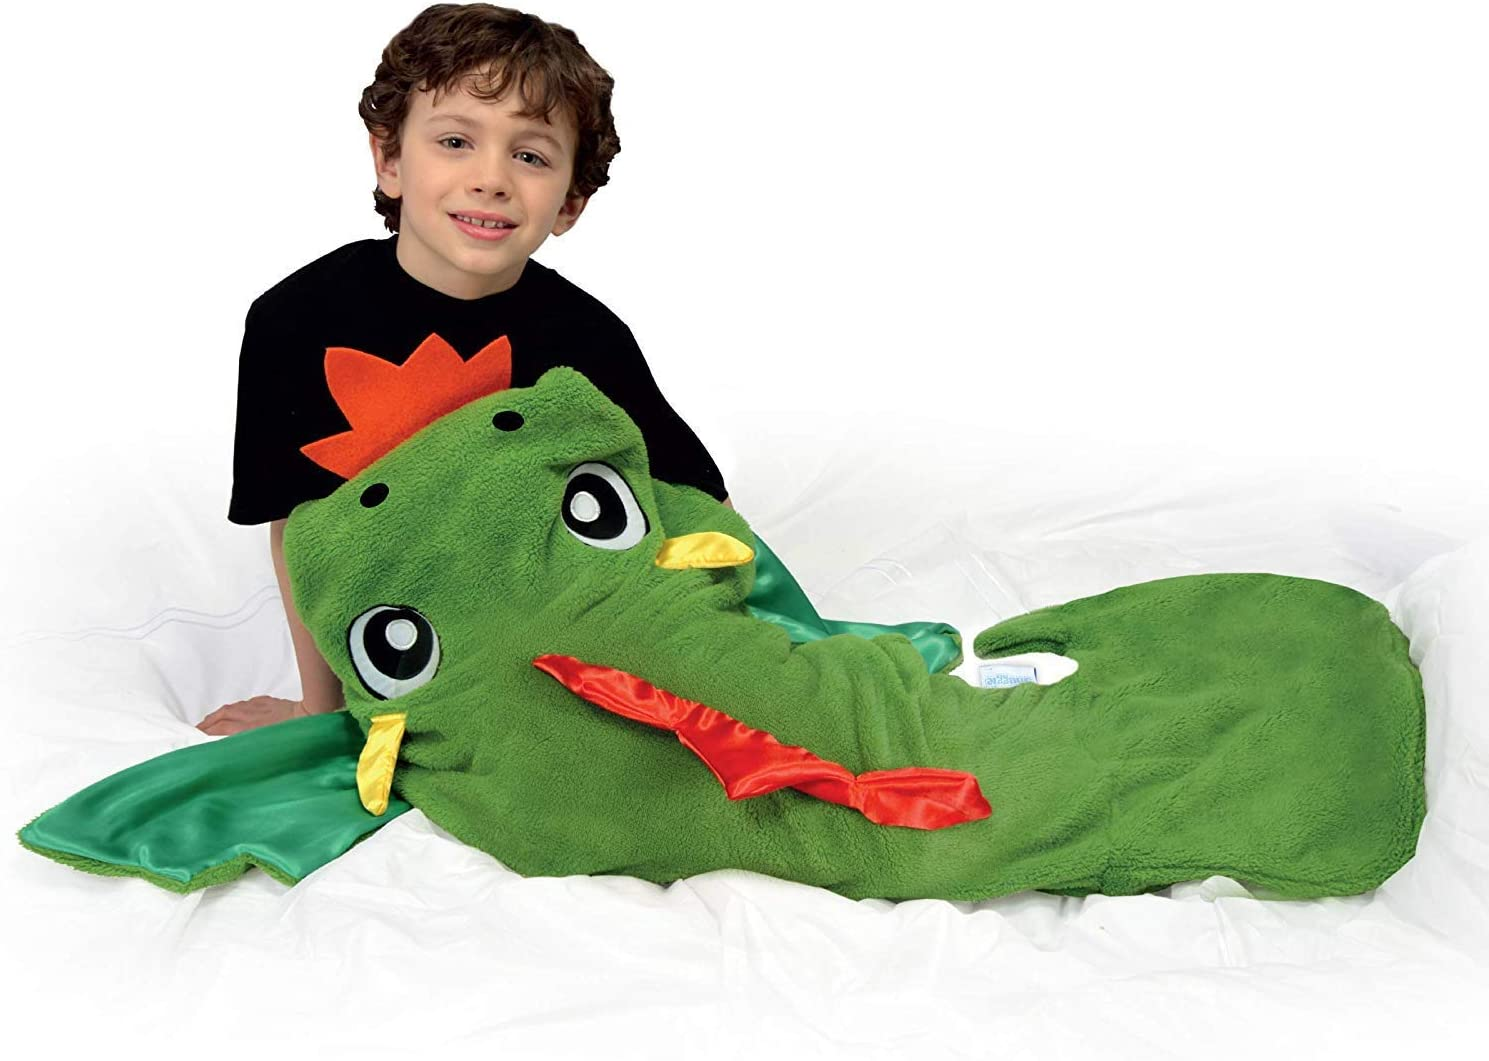 Snuggie Tails Dragon Blanket- Comfy All Soft Cozy Super Fixed price Max 60% OFF for sale Warm